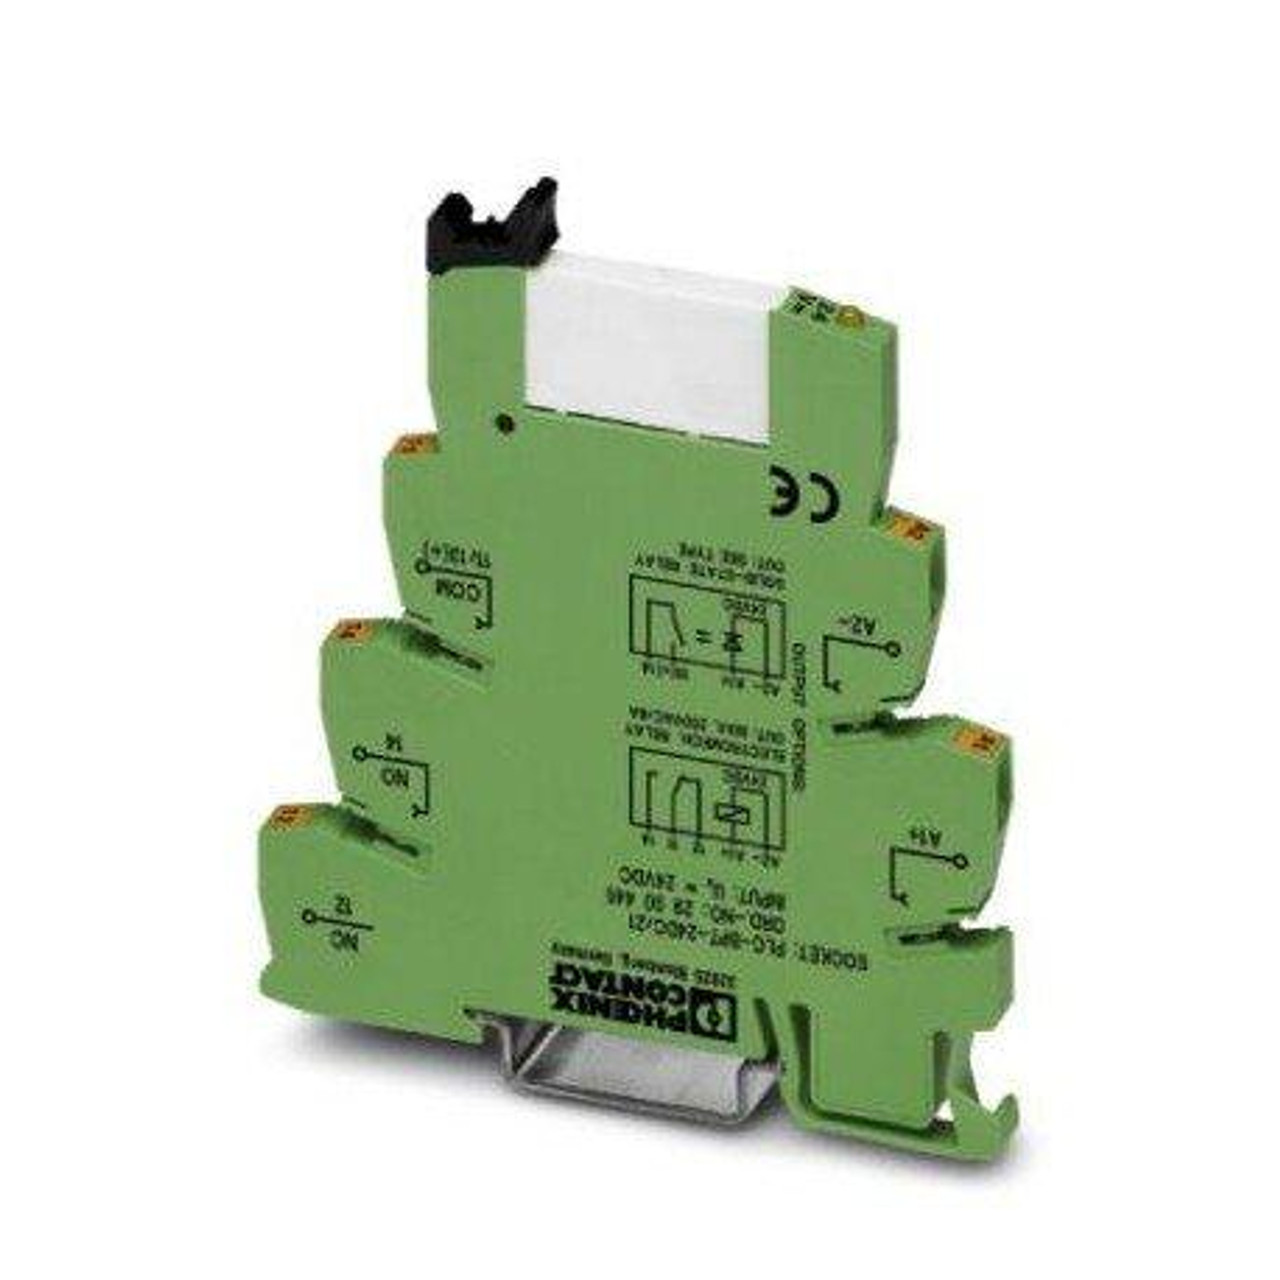 Phoenix Contact 2900316 Relay, PLC, Push-in-Technology (Pit), Power Contact Relay, 12V Dc